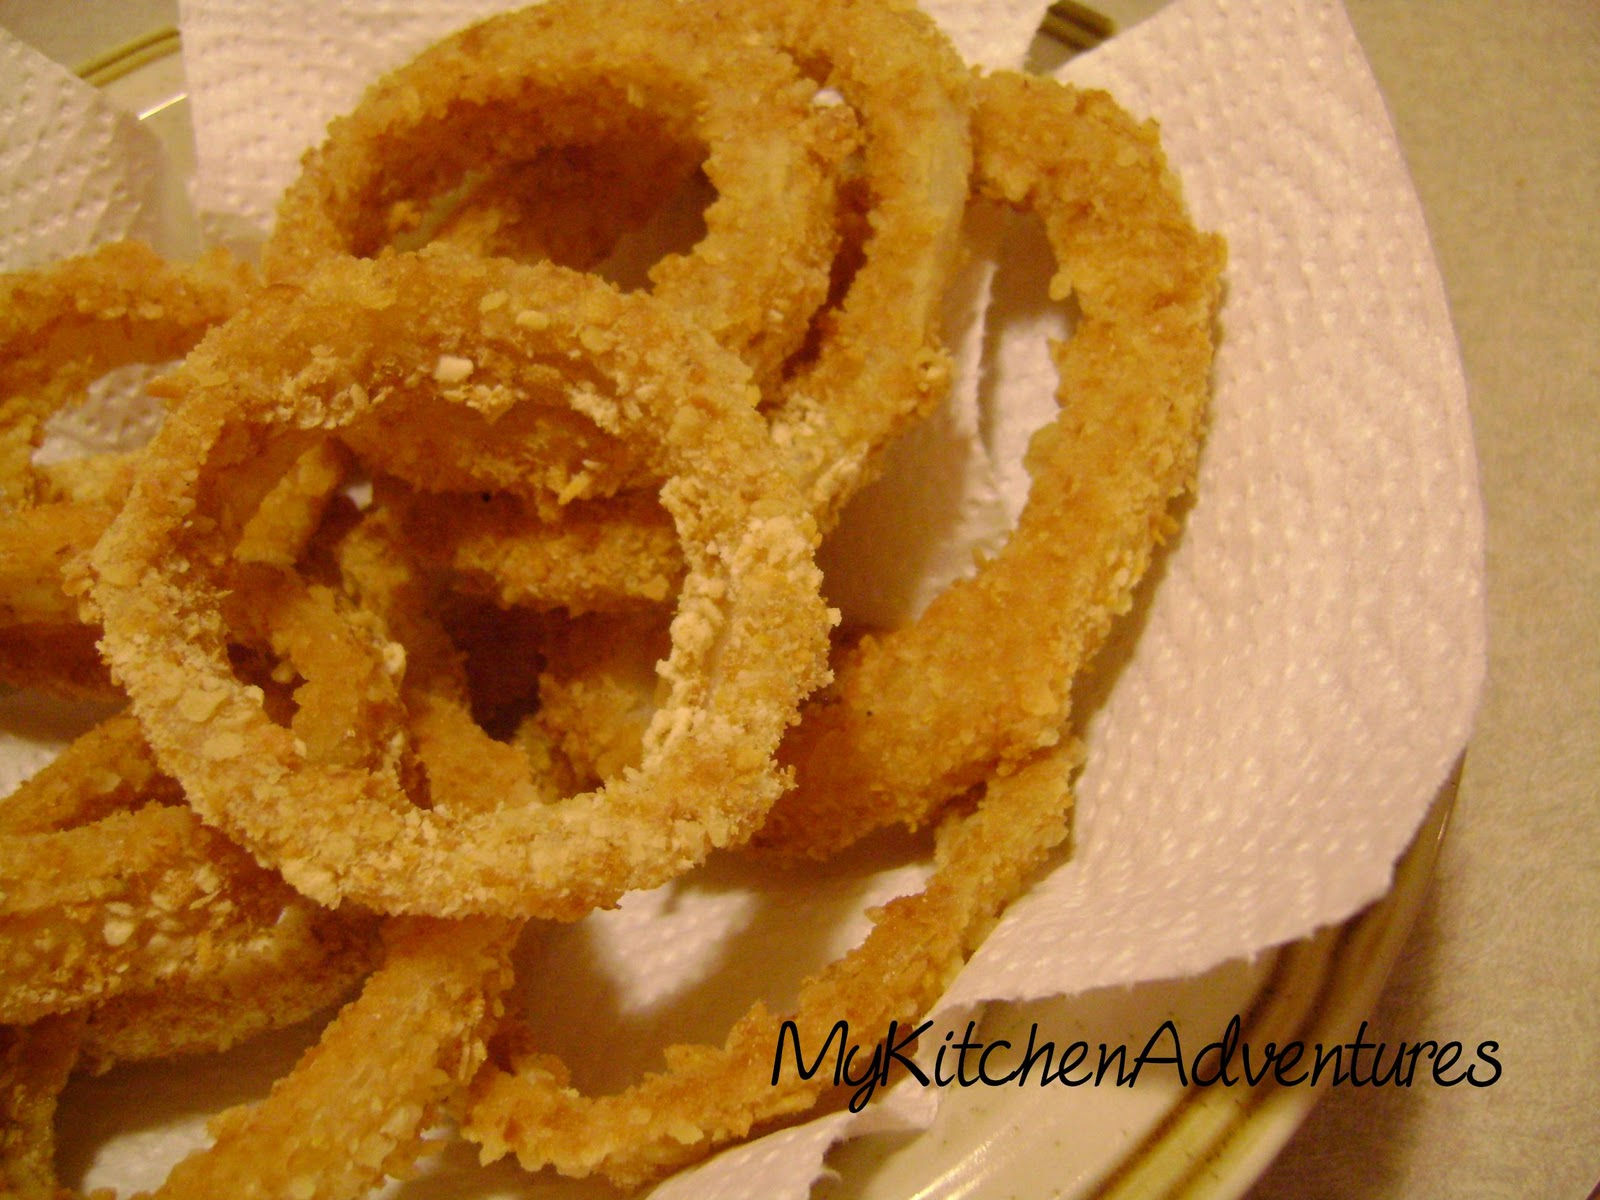 Oven Baked Onion Rings and Le Petit Triangle